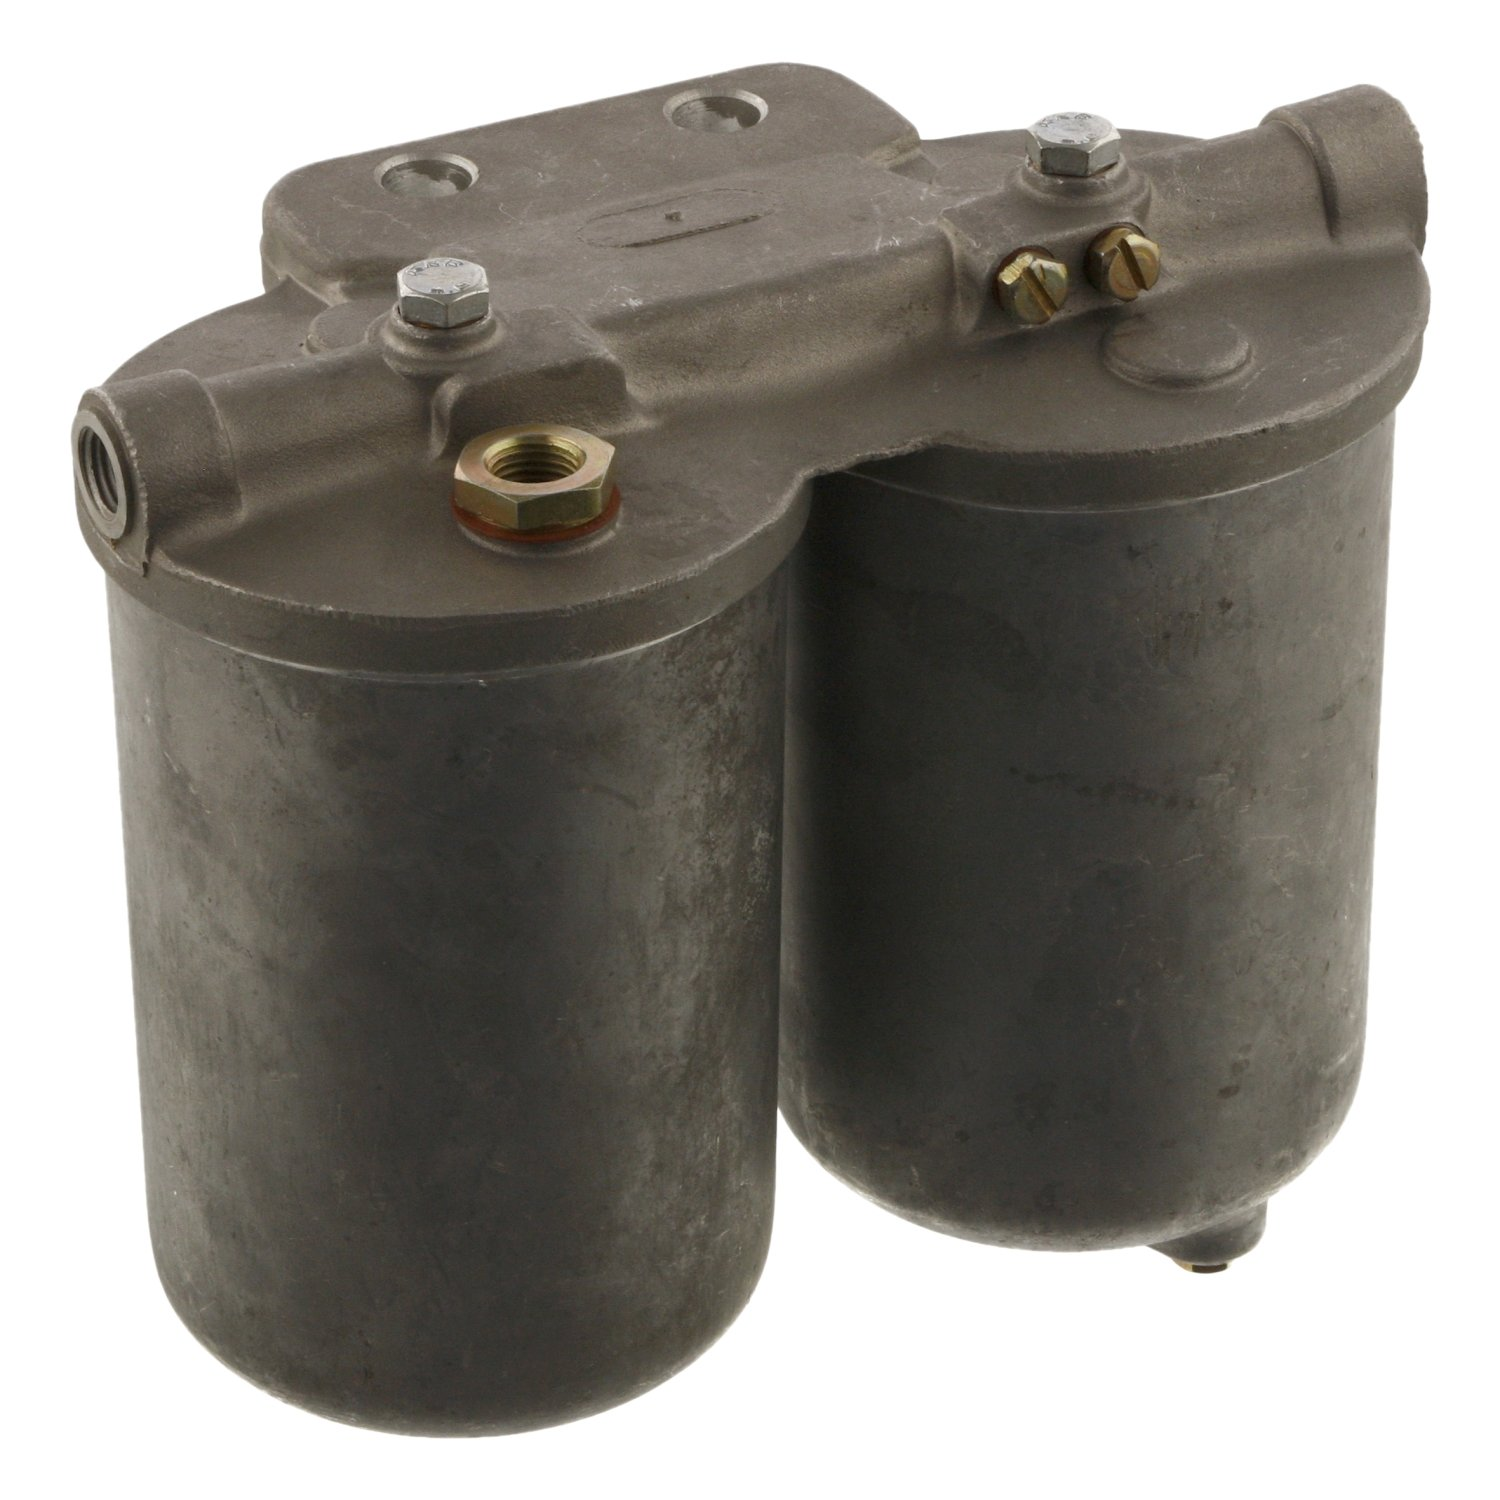 amazon com febi bilstein 38048 fuel filter housing with coveramazon com febi bilstein 38048 fuel filter housing with cover pack of 1 automotive